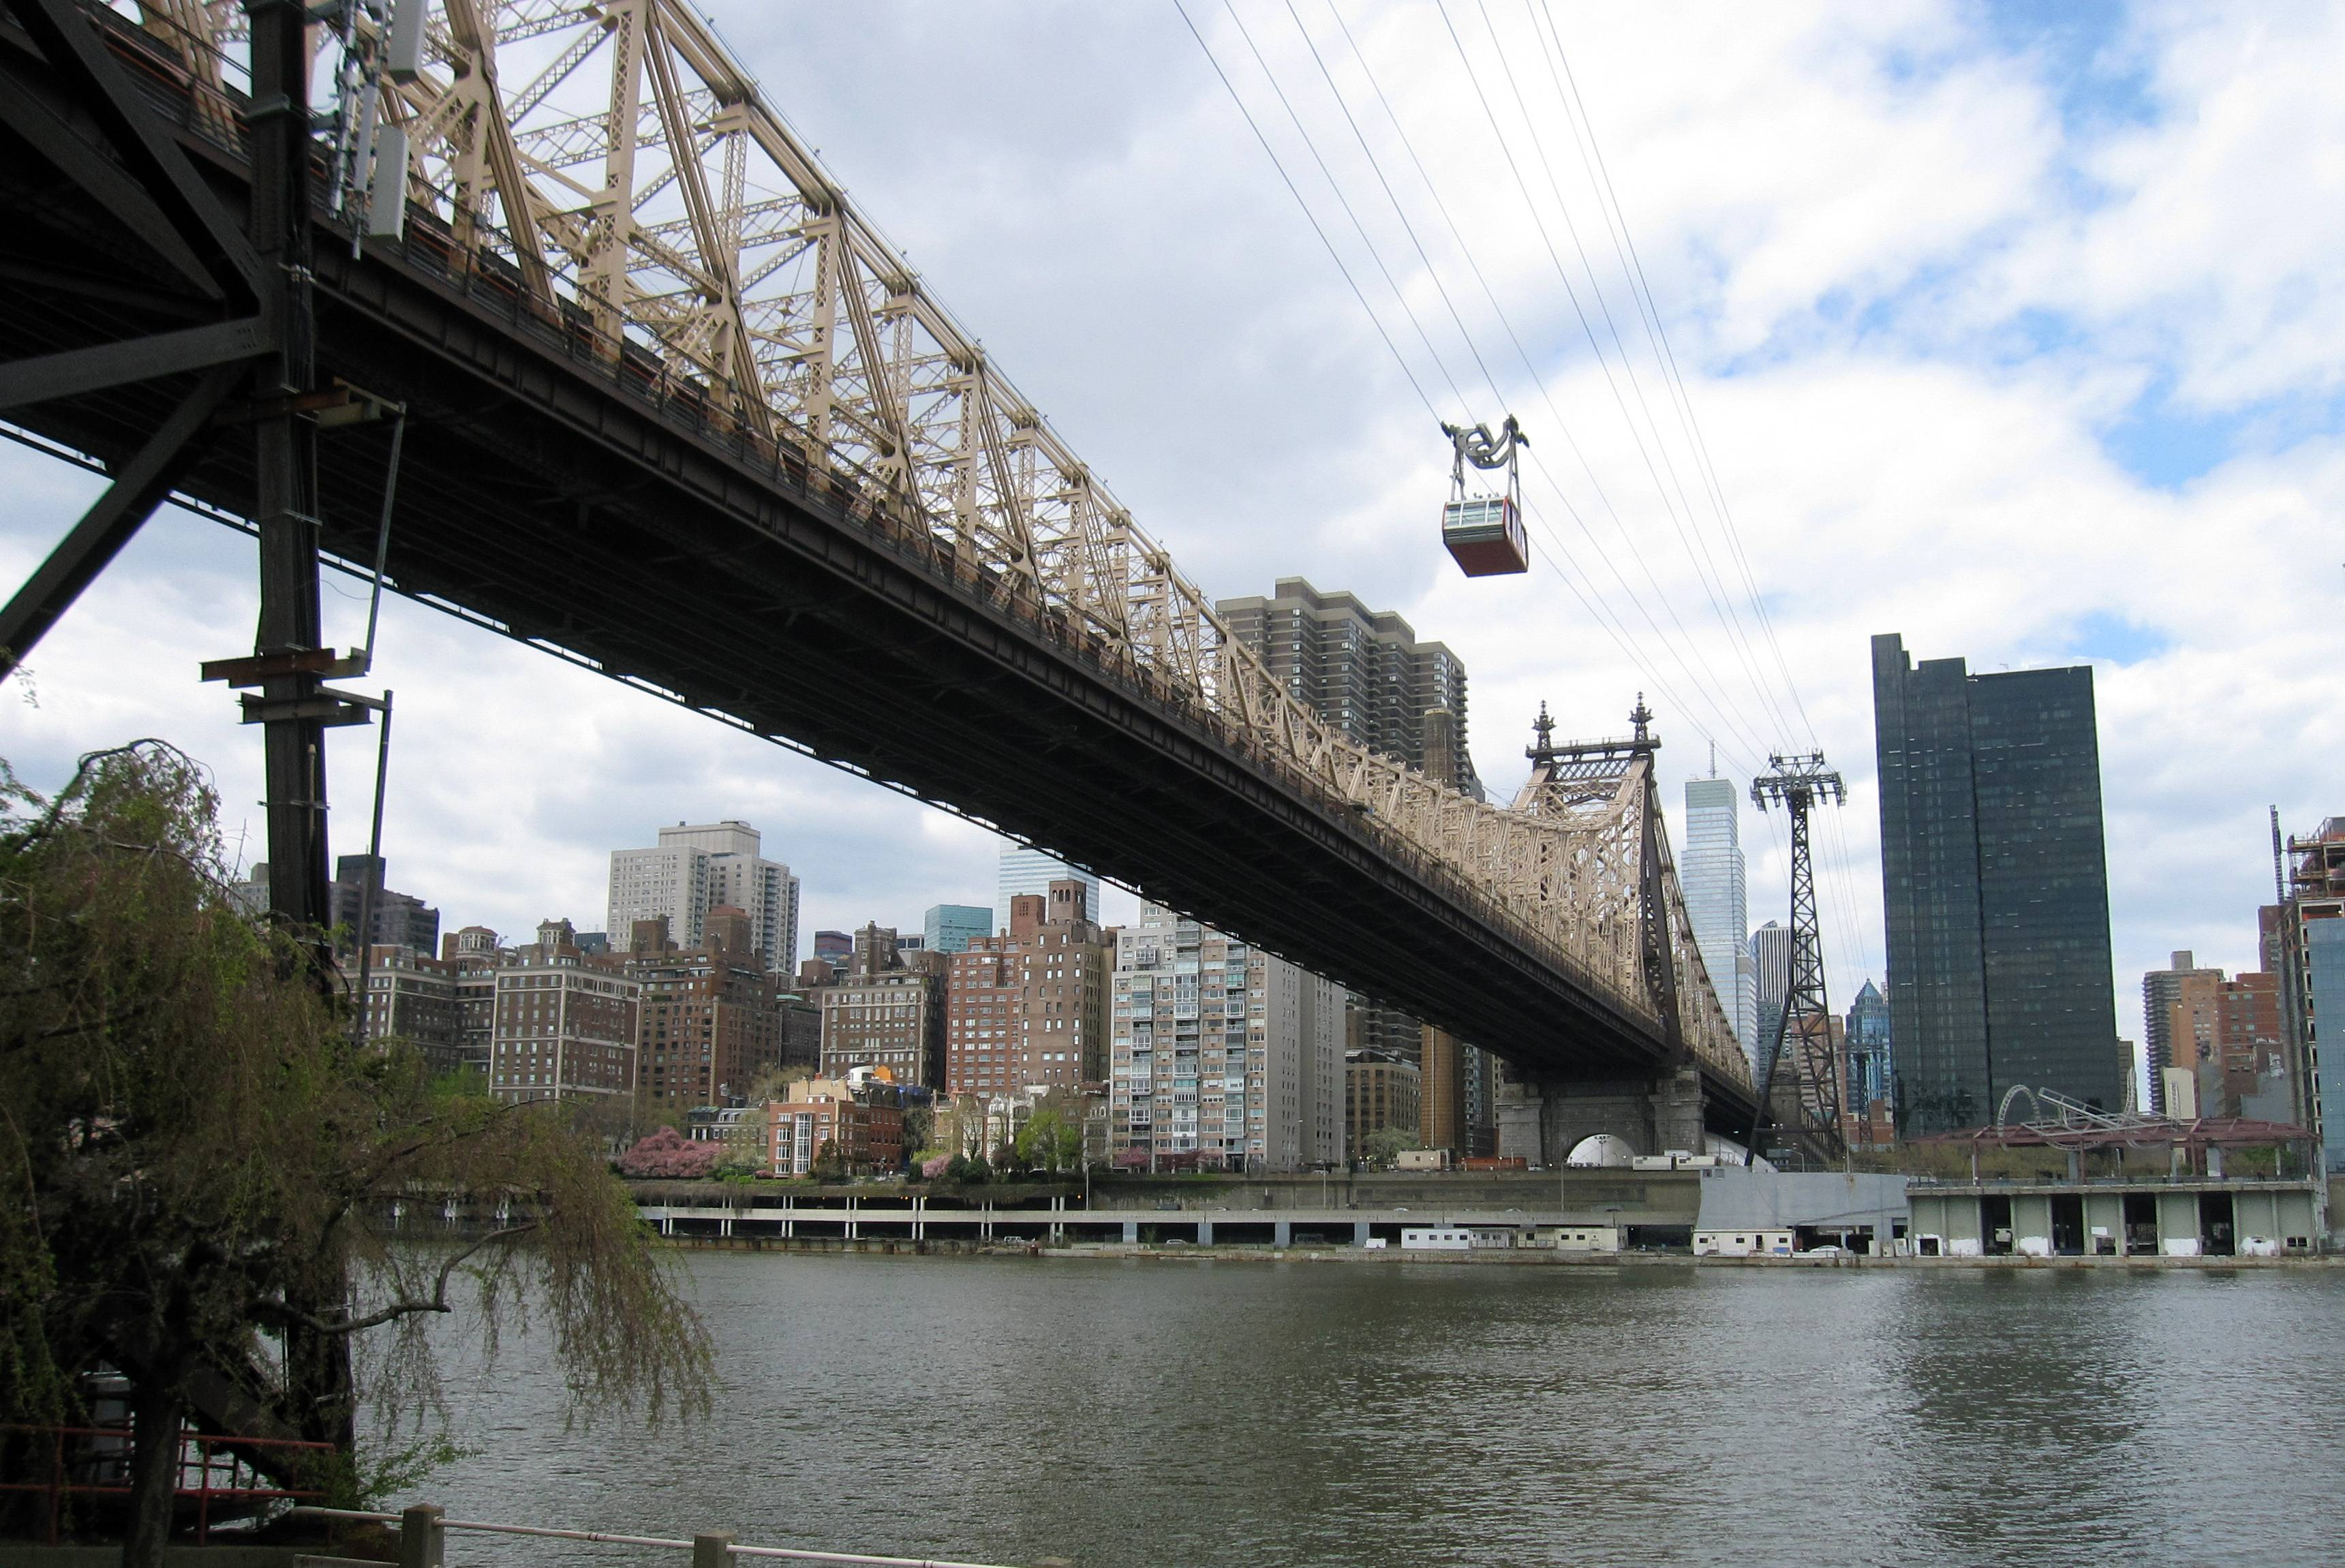 The Roosevelt Island Tram above the Ed Koch Queensborough Bridge, crosses the East River to Roosevelt Island in New York City.